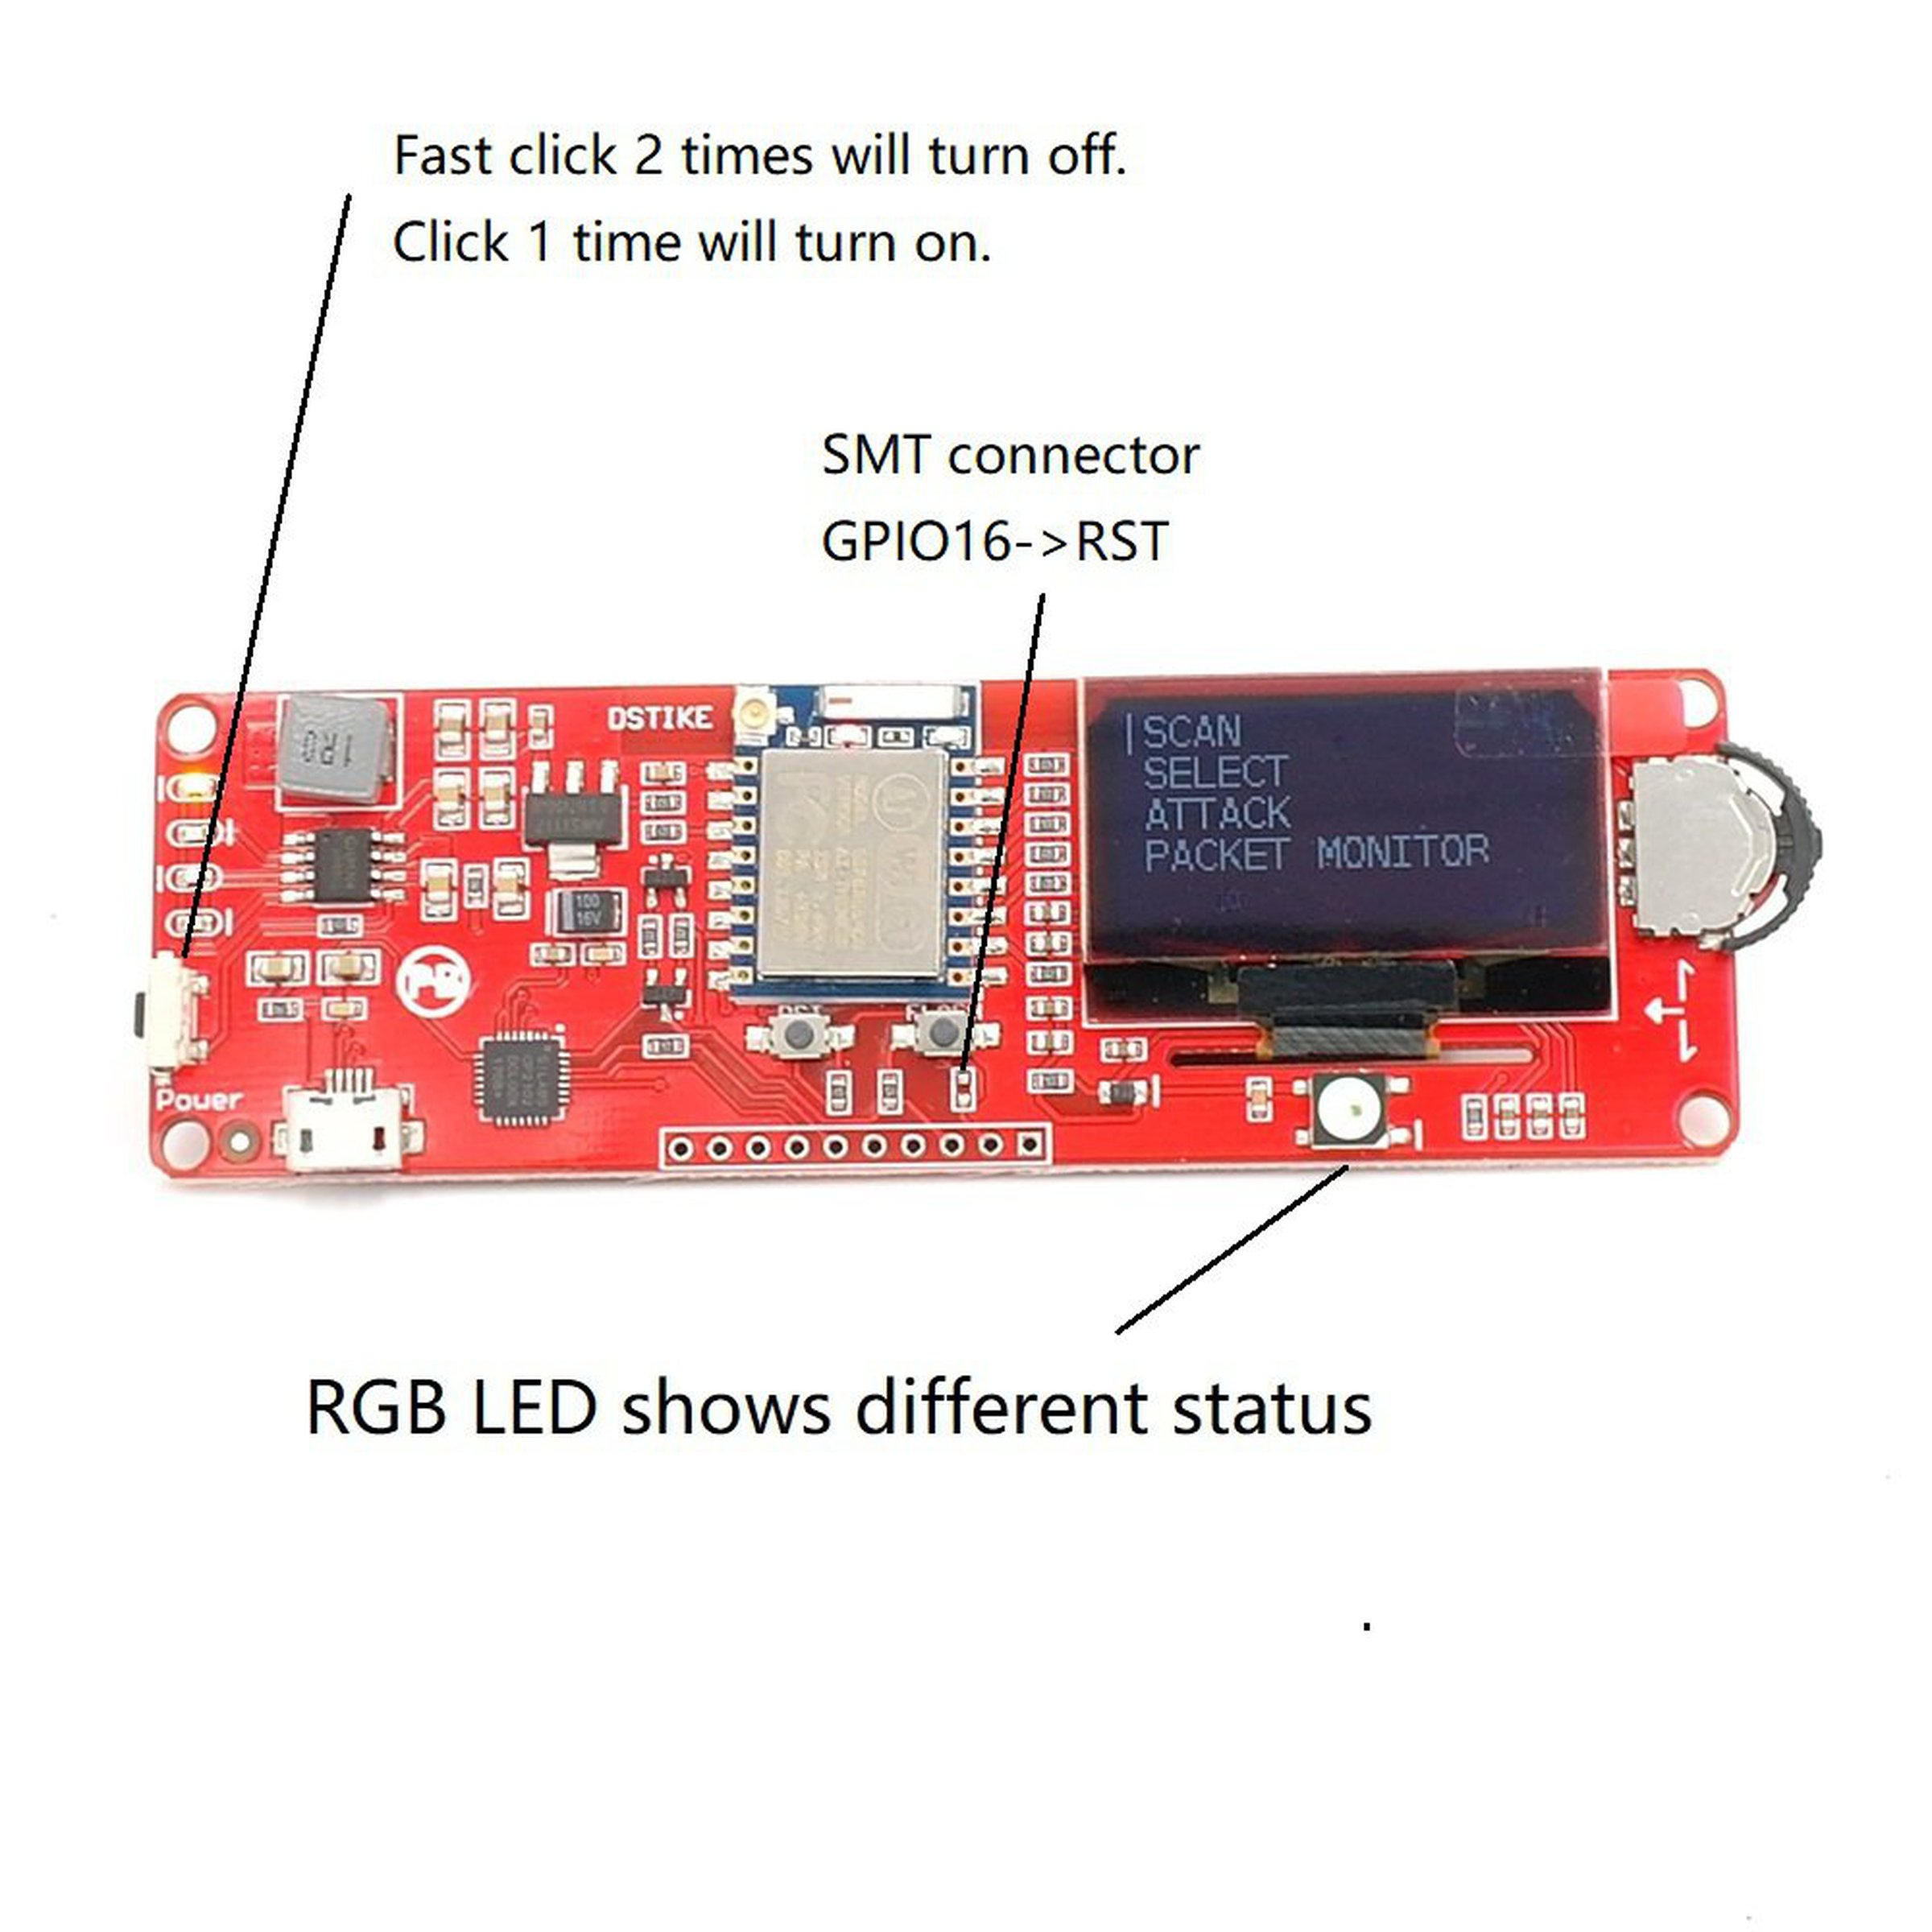 Dstike Wifi Deauther Oled V35 Added Rgb Led From Travis Lin On Tindie Circuit 5